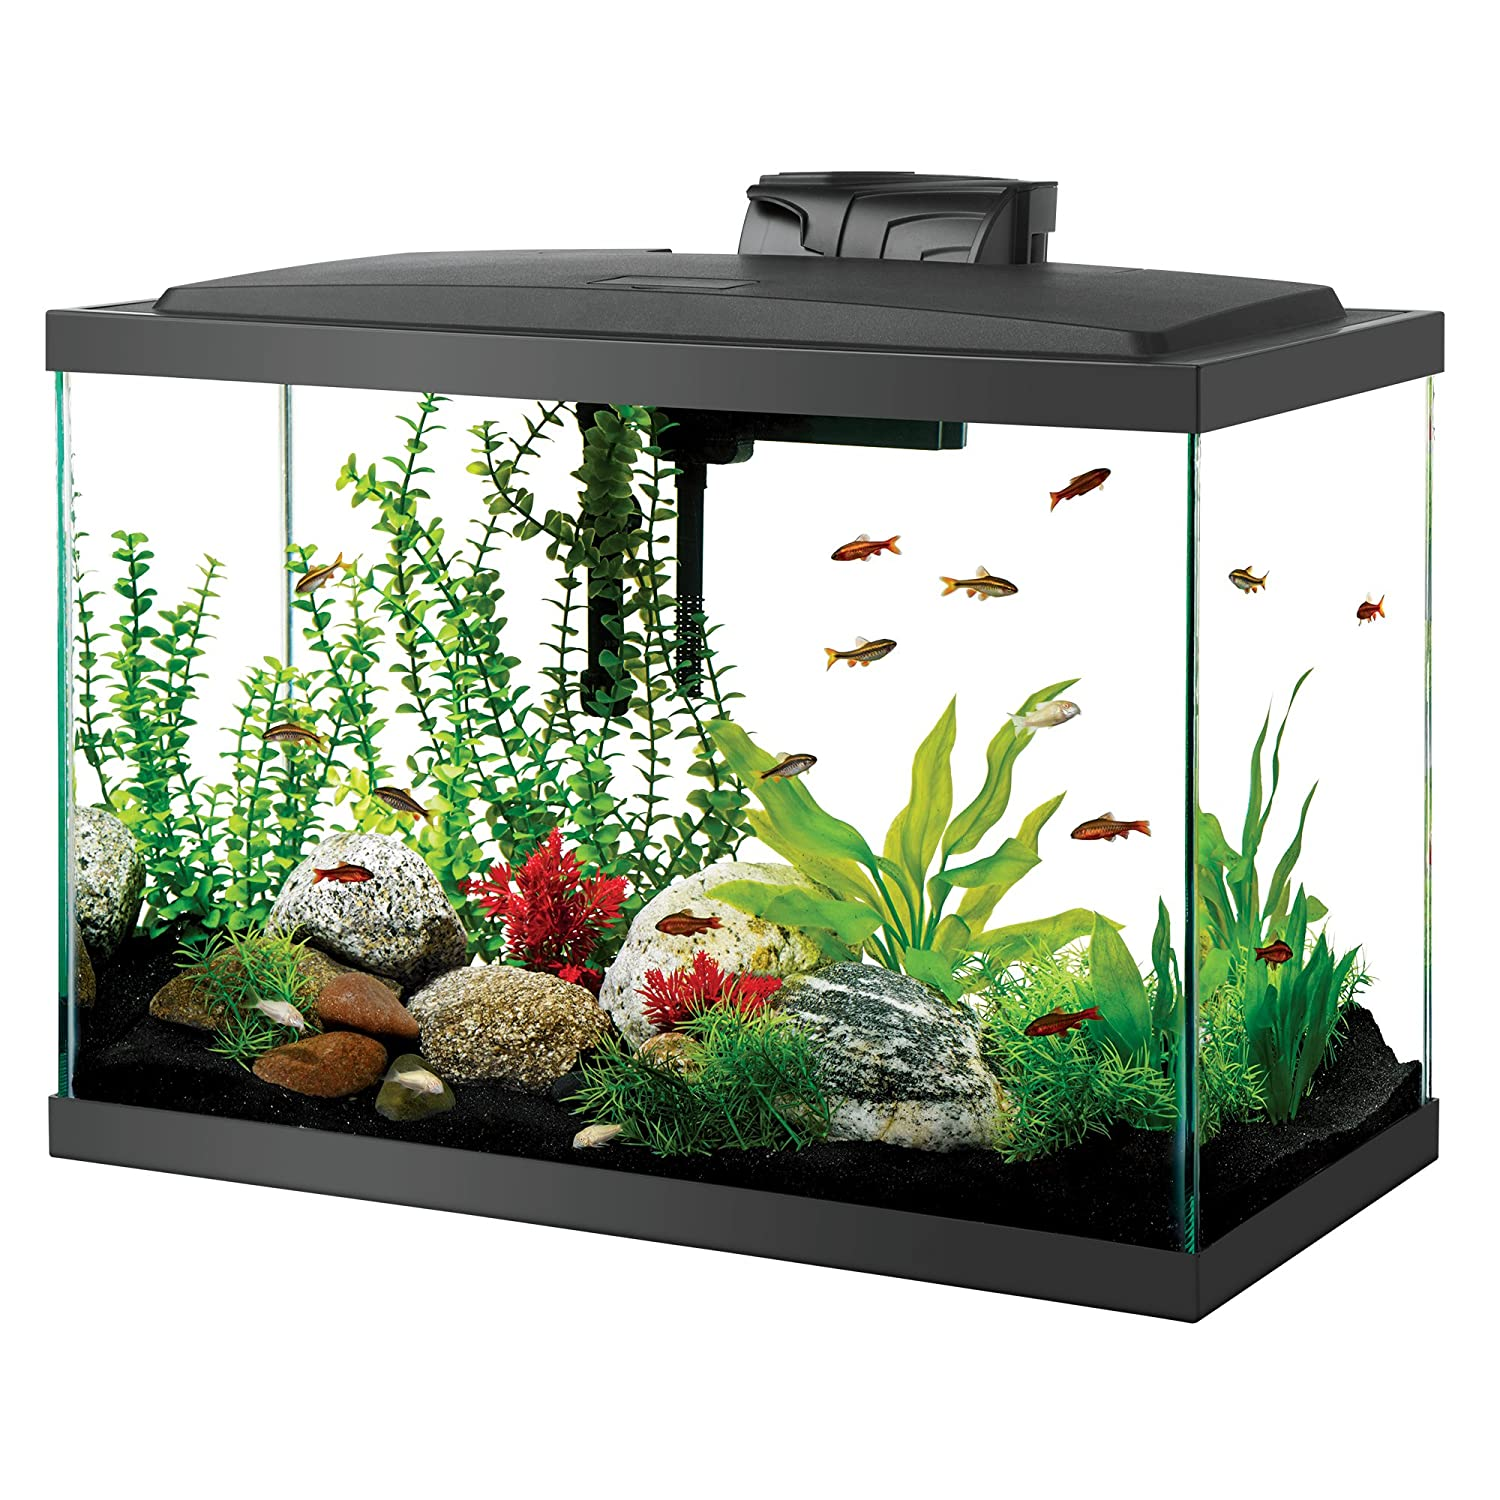 Top 7 Best 20 Gallon Aquariums In 2018 Market List